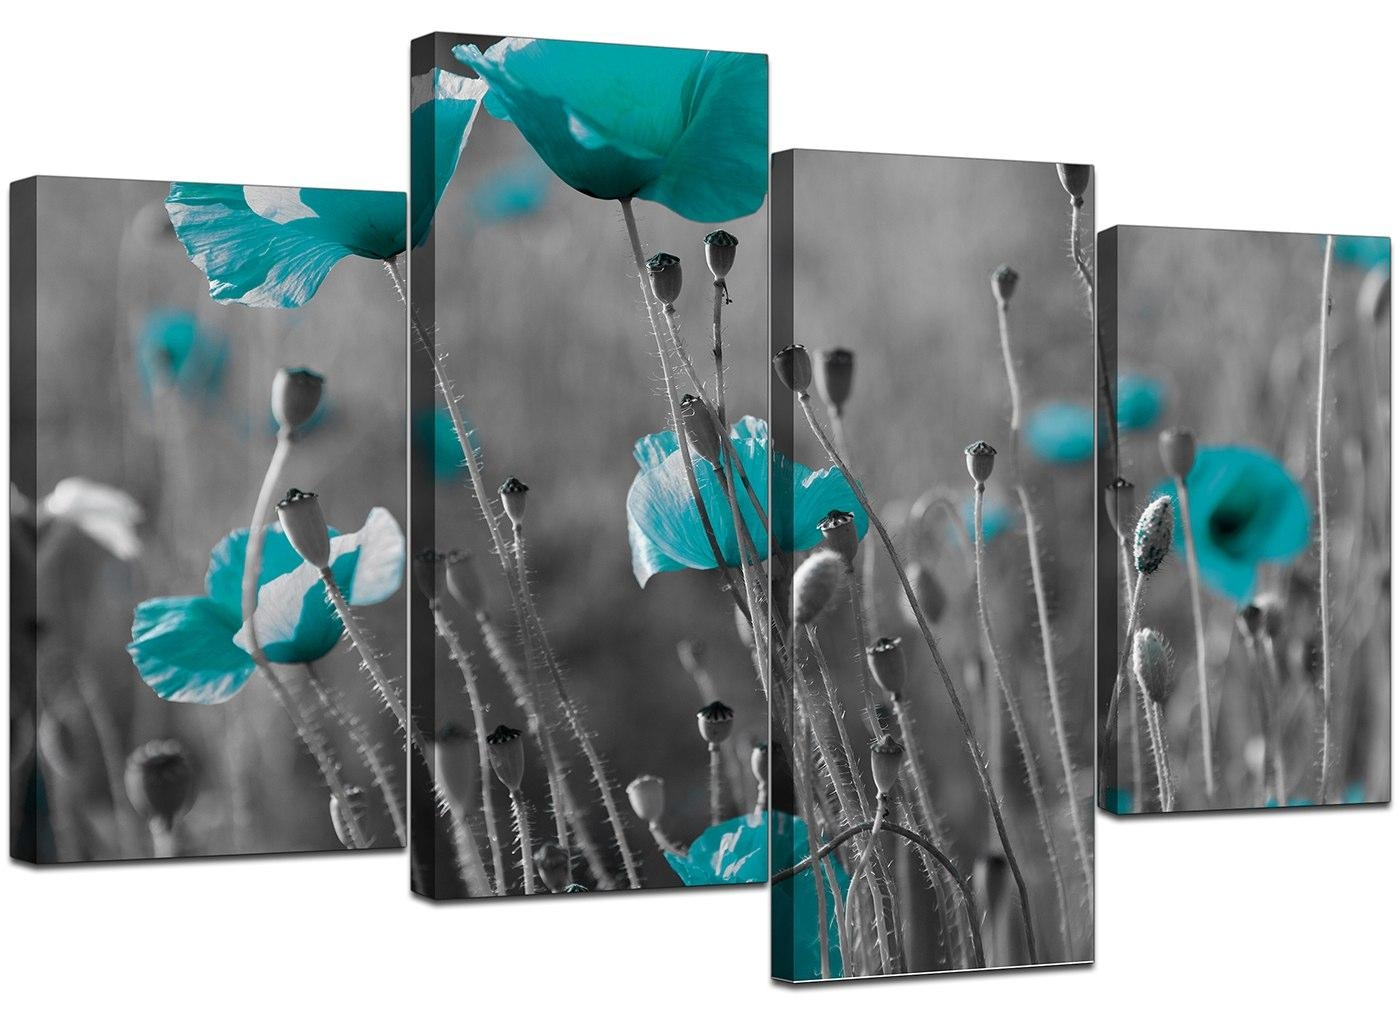 Canvas Art Of Teal Poppies In Black & White For Your Office Intended For Teal And Black Wall Art (Image 3 of 20)